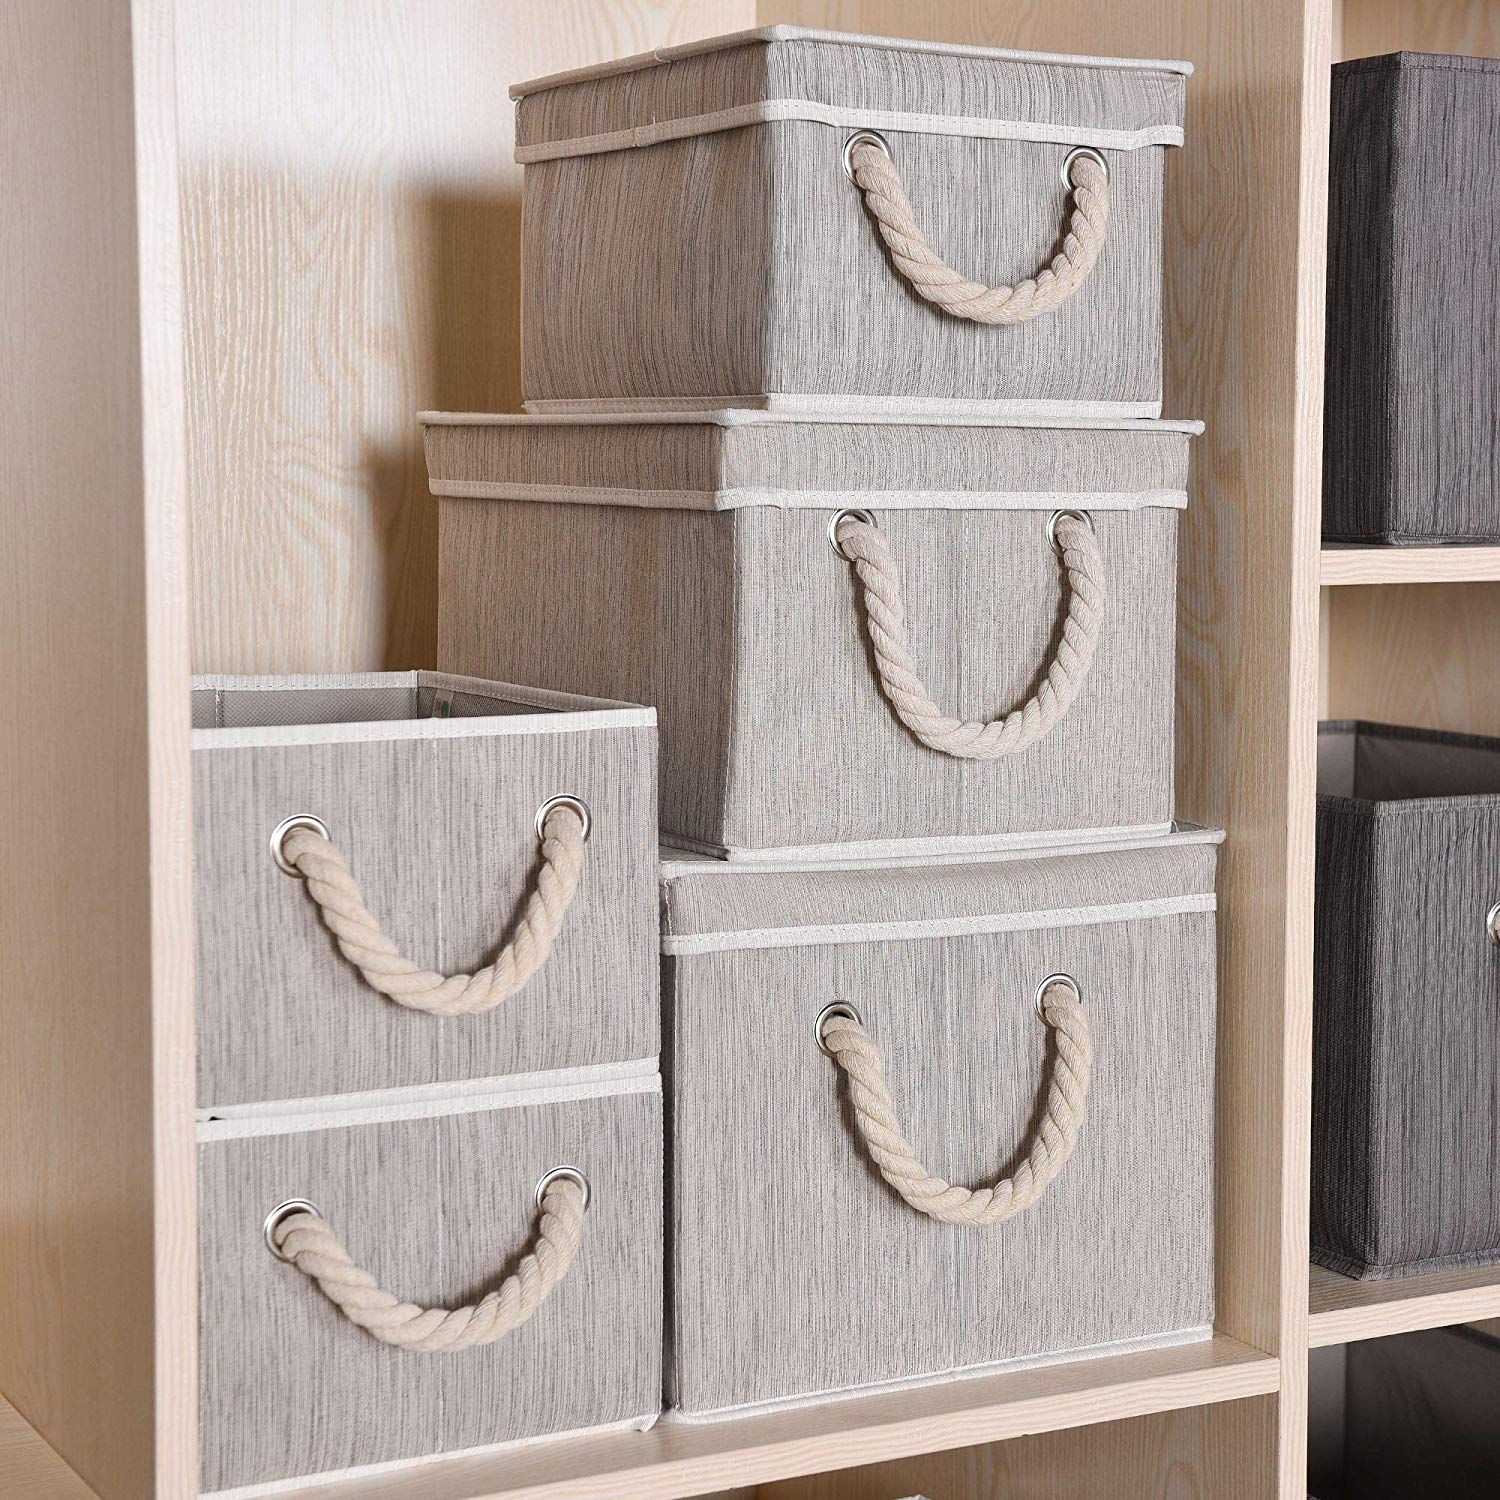 Amazon Com Storageworks Storage Bins With Lid And Cotton Rope